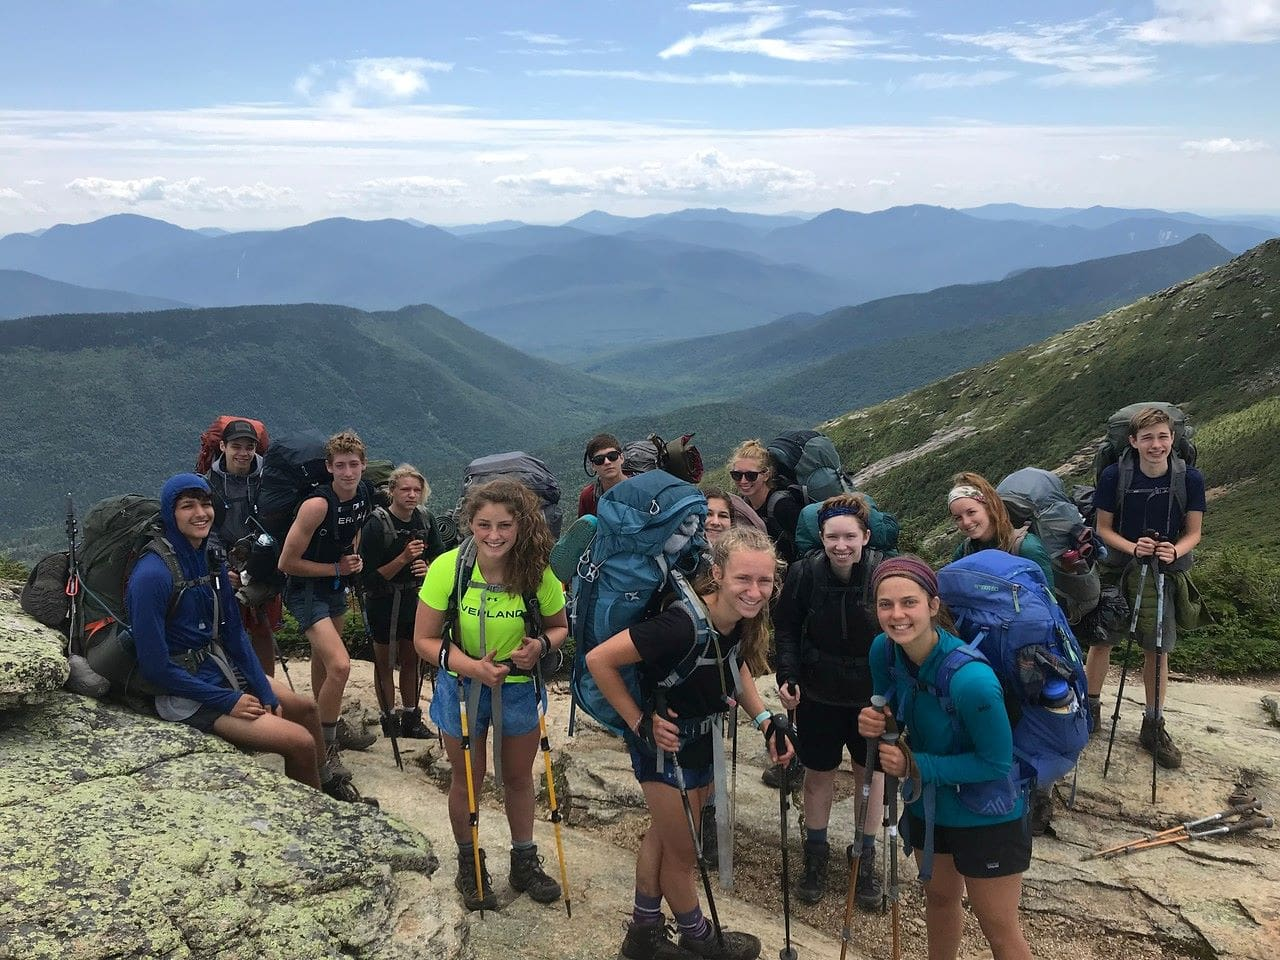 A group of campers stops to rest their legs this summer while on a hiking trip in the beautiful Appalachians